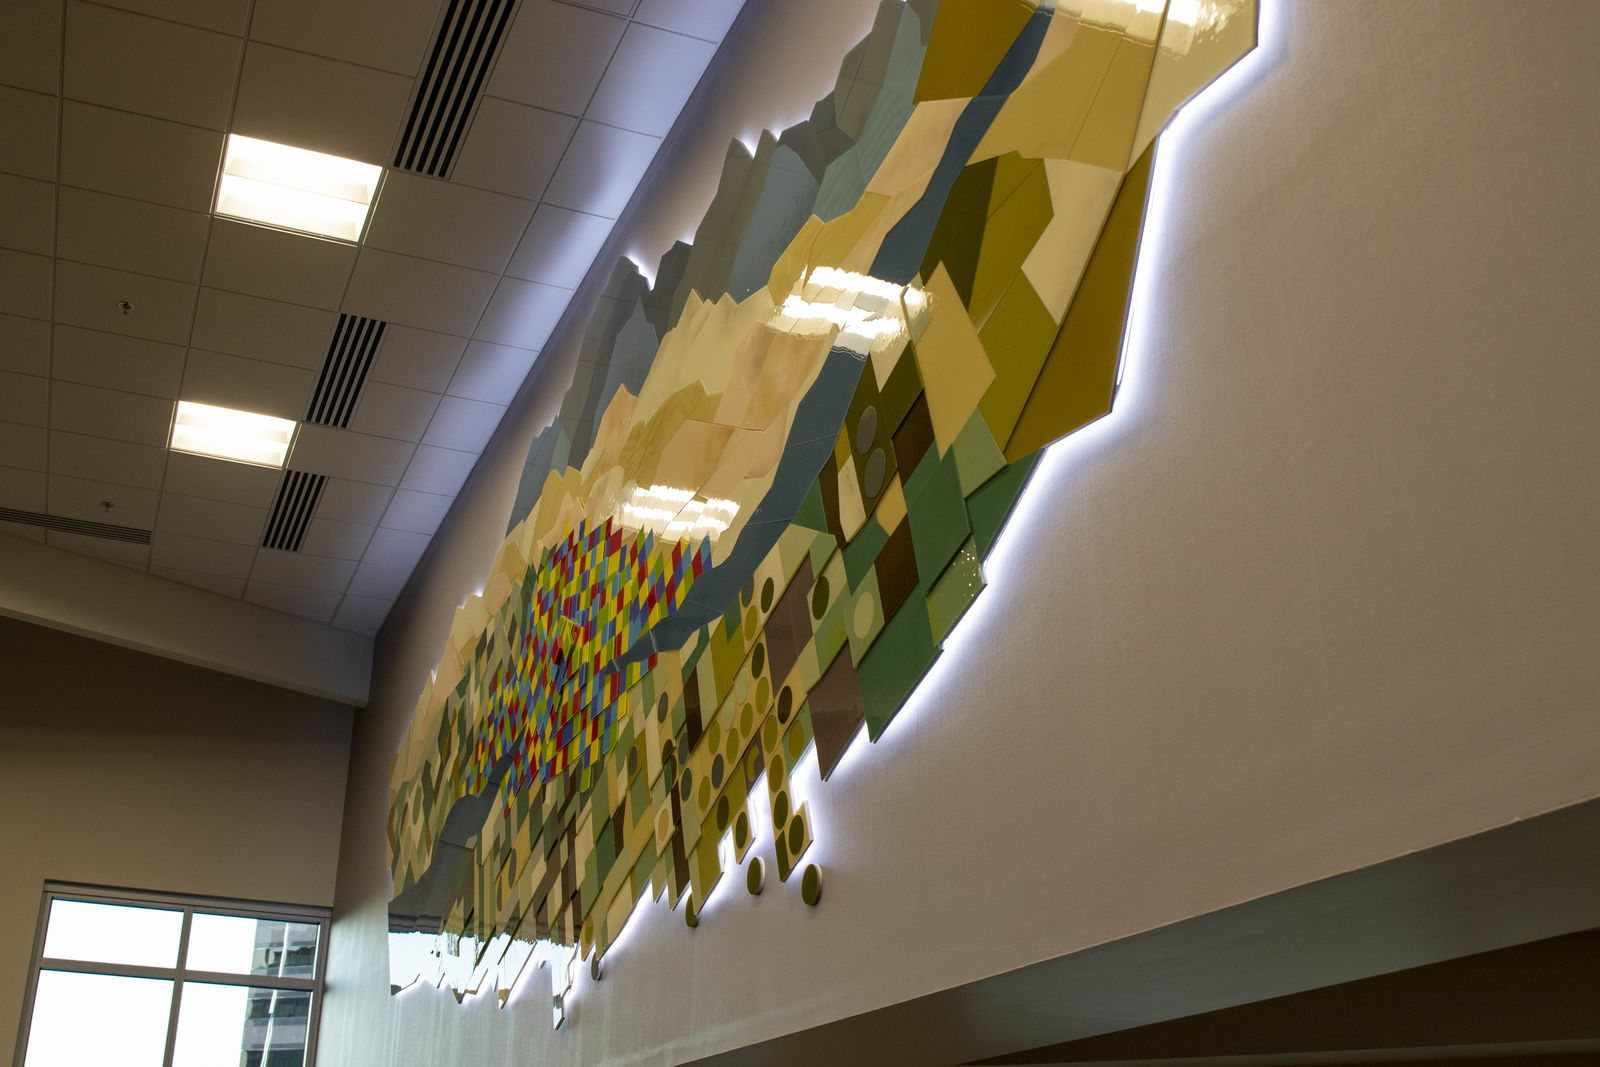 The Boise Centre got a new look Thursday with the dedication of new glass sculpture. The installation is located in Centre East and is made out of hundreds of stained glass pieces. (Photos by Axel Quartarone){ }{ }